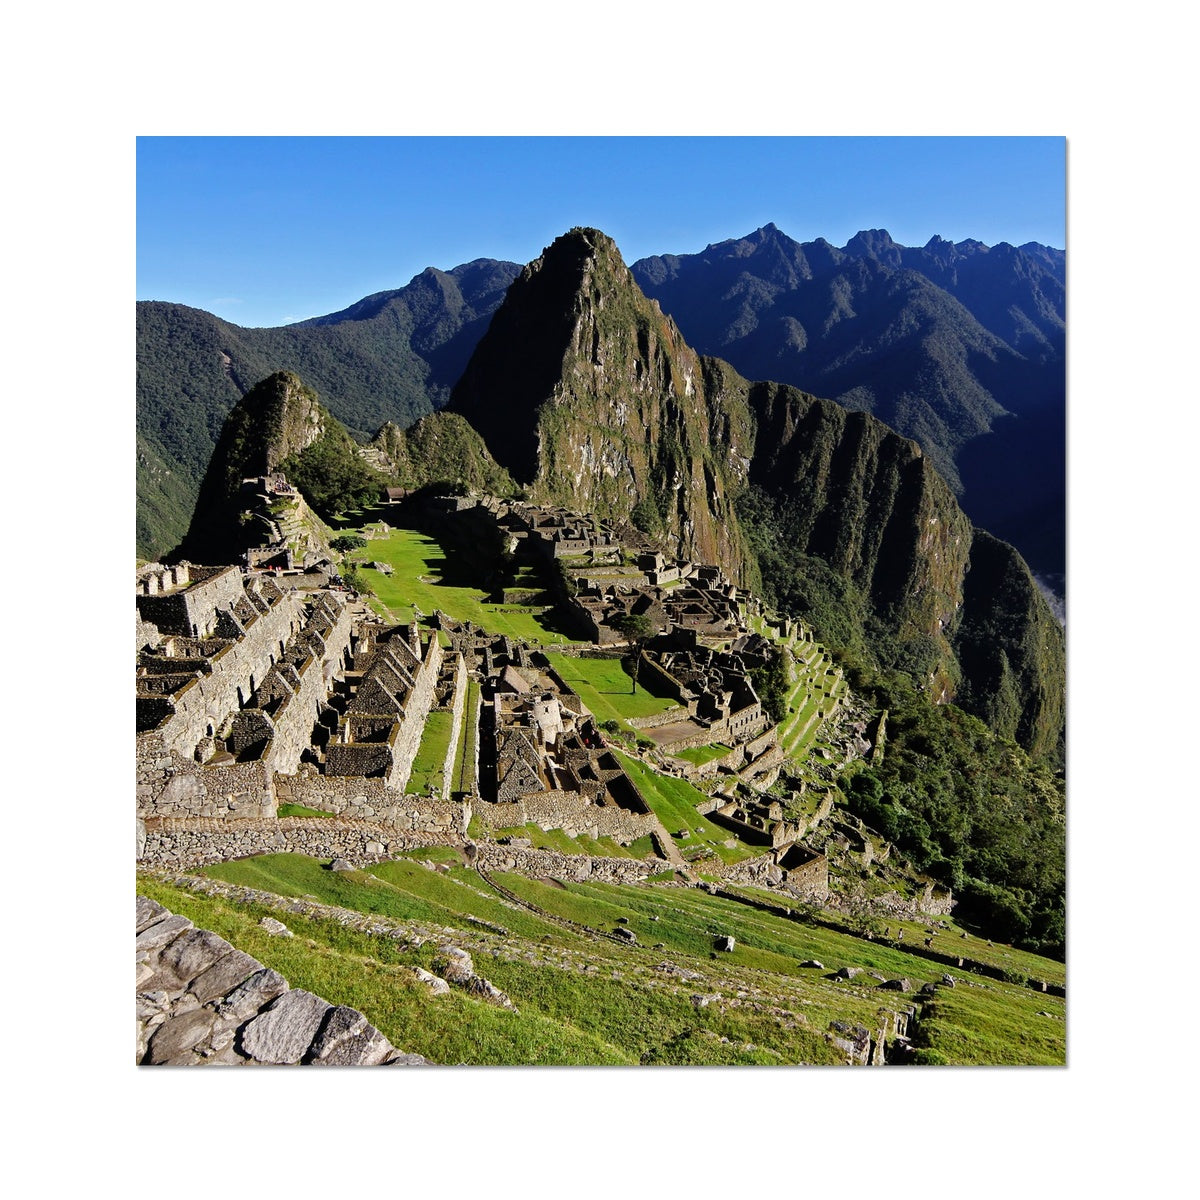 Machu Picchu - Photo Art Print